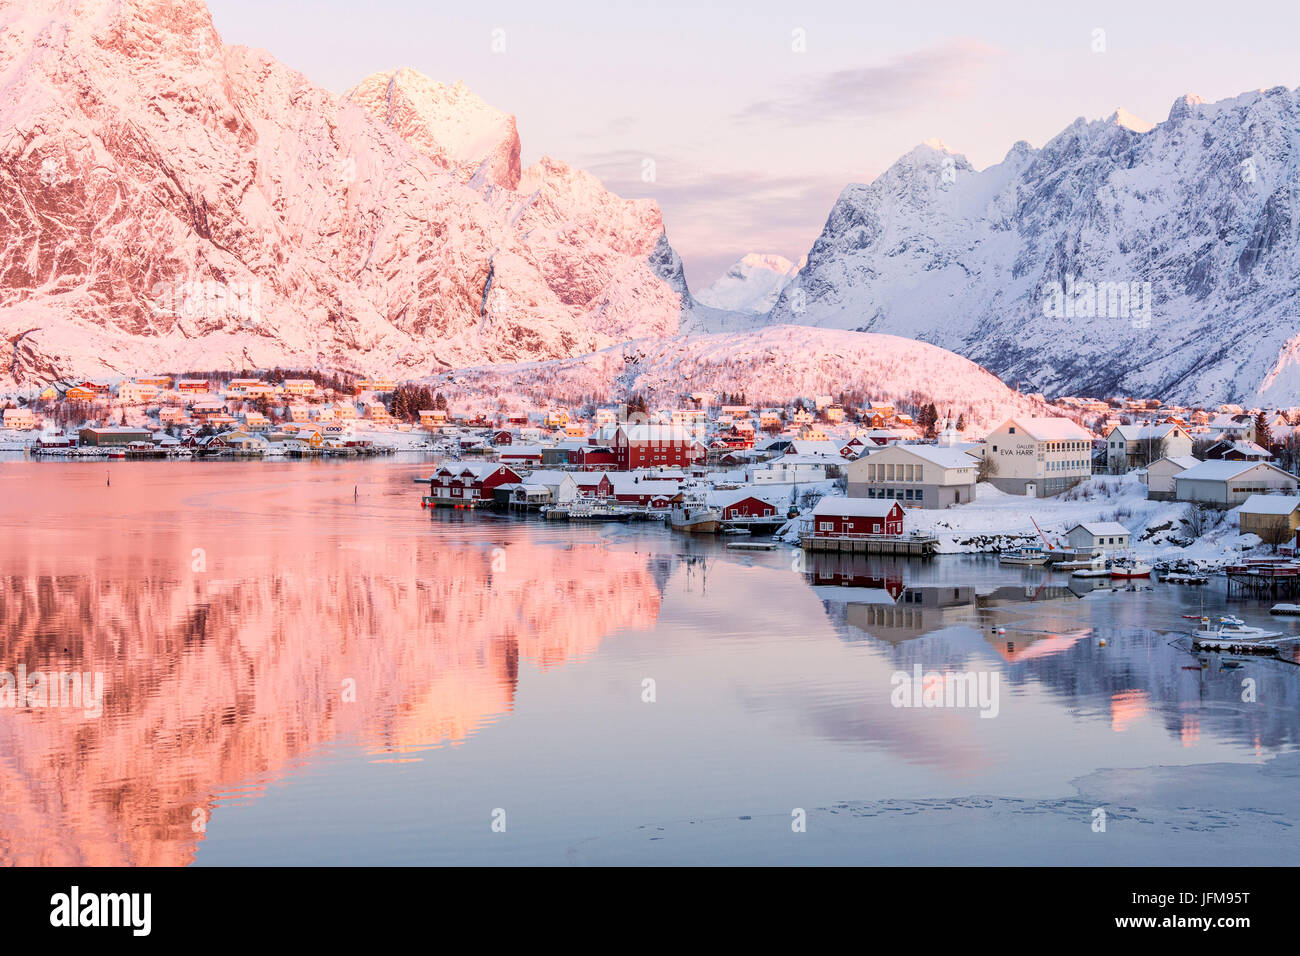 Pink sunrise and snowy peaks frame the frozen sea and the fishing village Reine Bay Nordland Lofoten Islands Norway - Stock Image